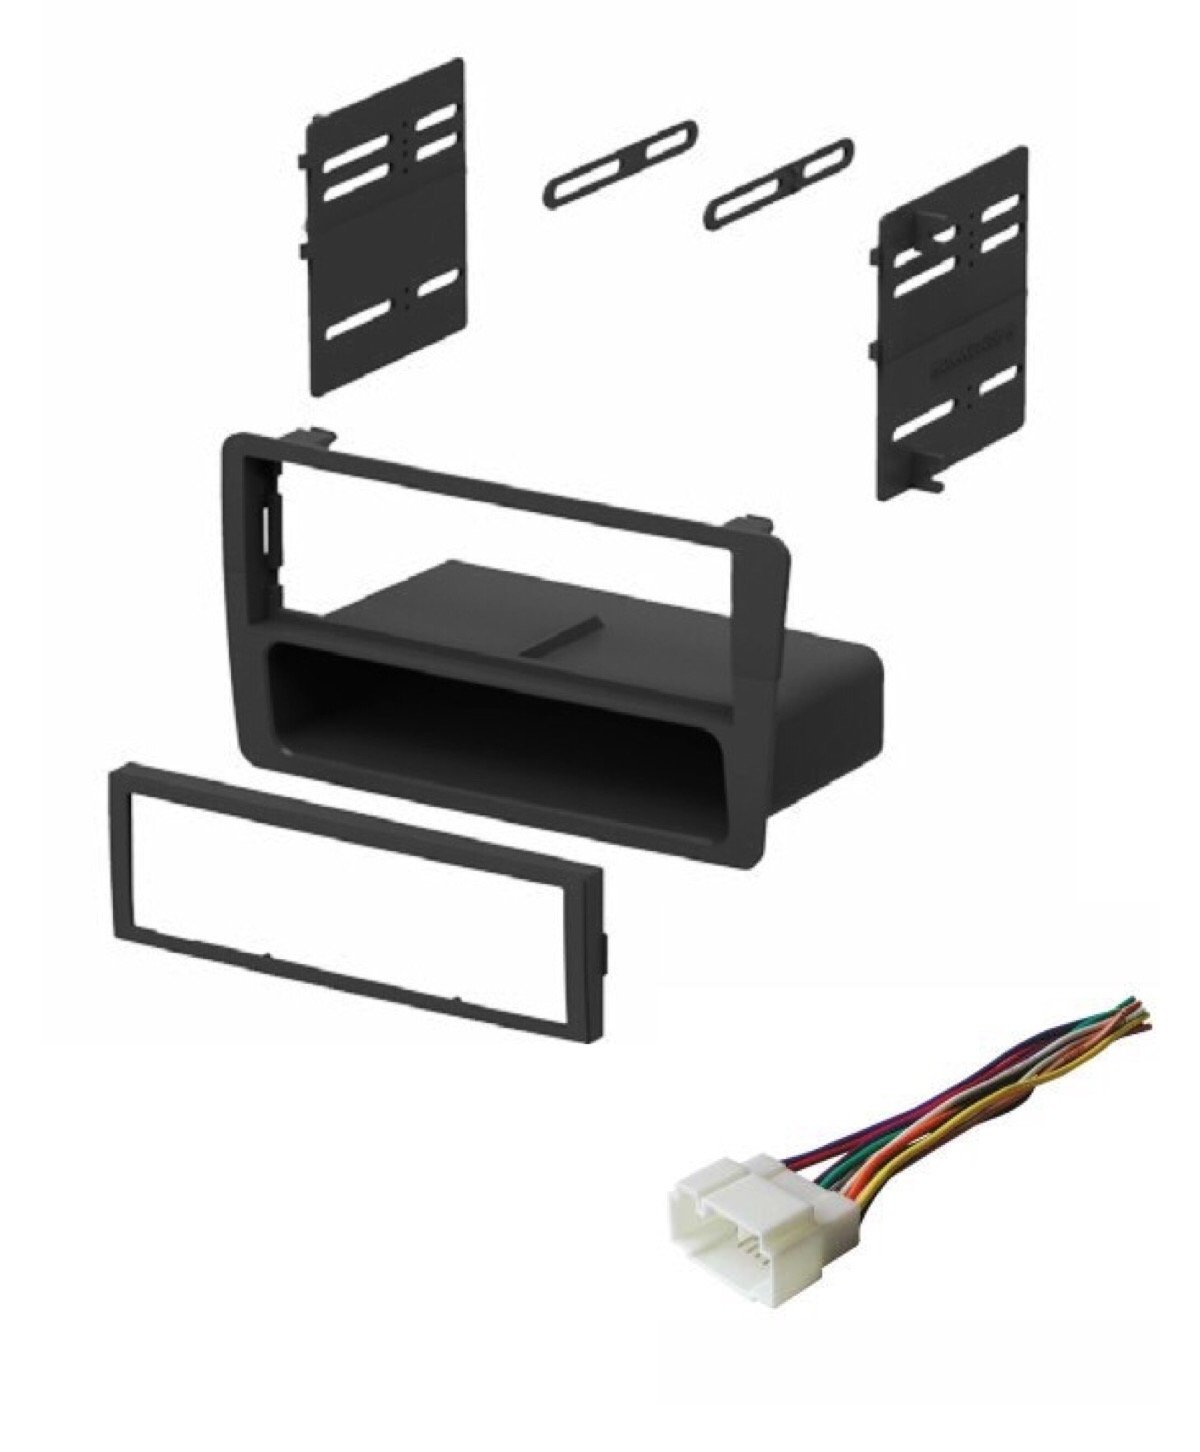 Best Rated In Car Audio Video Dash Mounting Kits Helpful Honda Wire Harness 2003 Asc Stereo Kit And For Installing An Aftermarket Single Din Radio